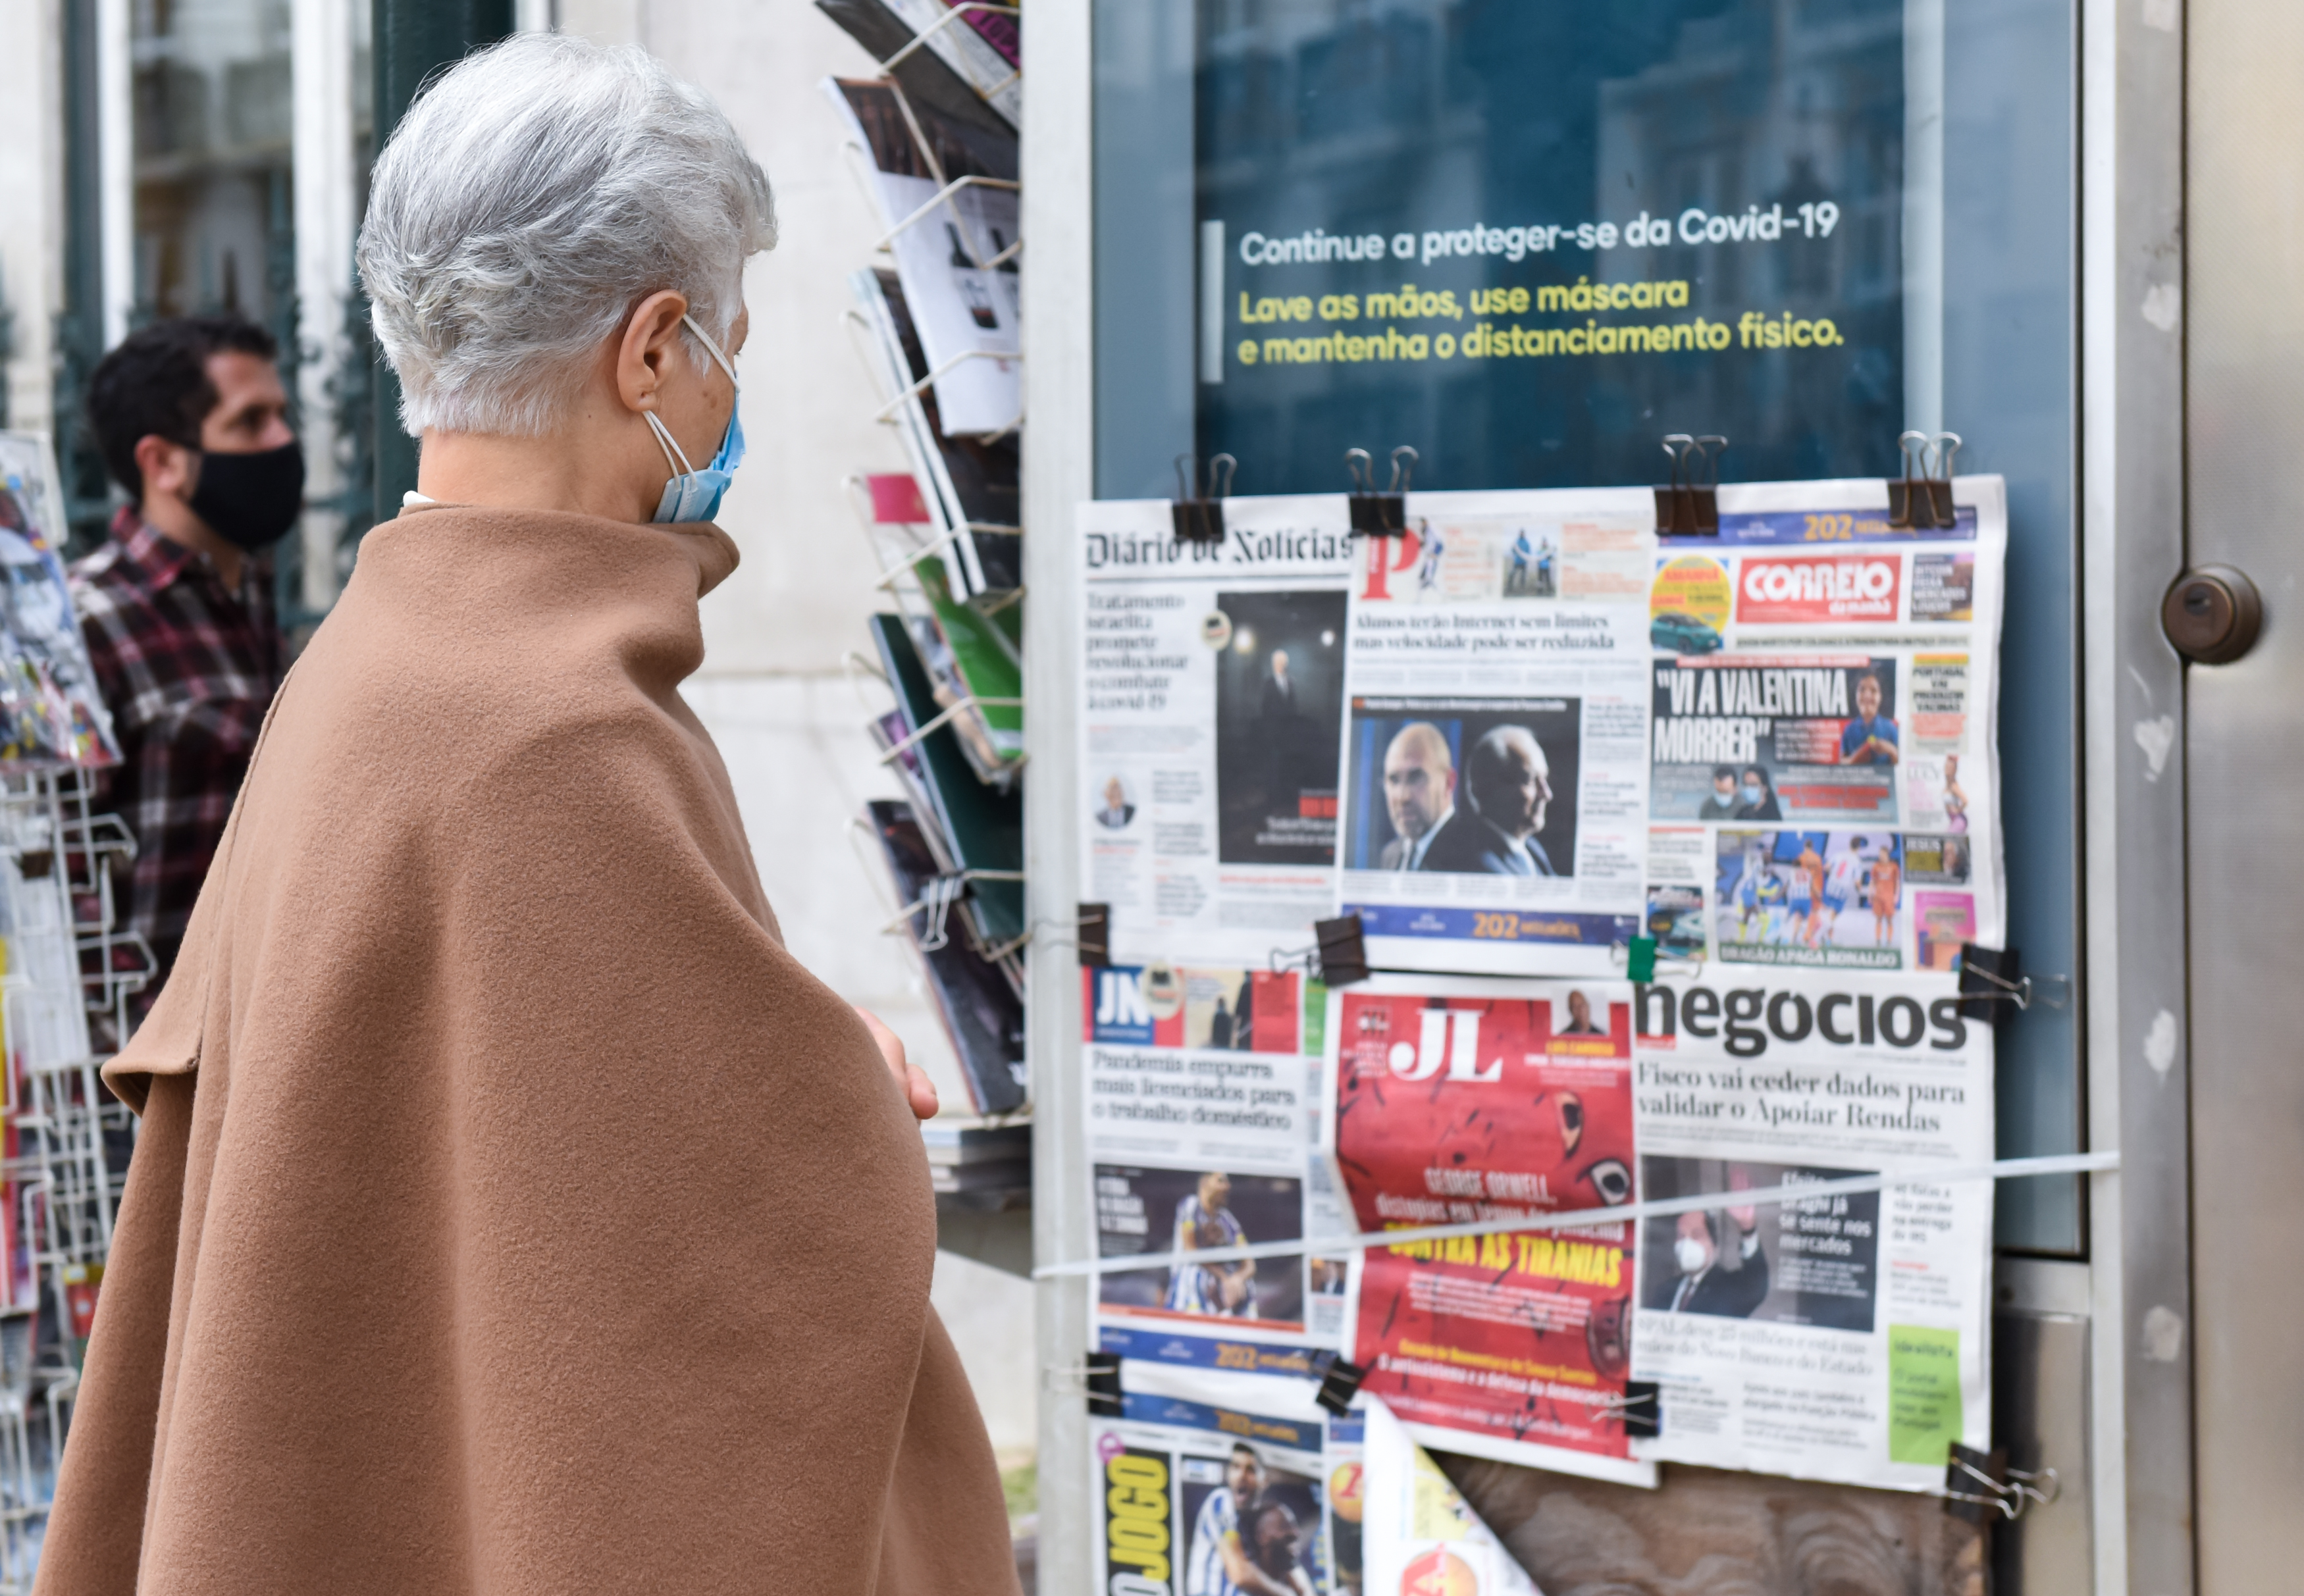 A woman reads the newspapers frontpages at a Chiado newsagent, as Portuguese lockdown continues. Portugal, one of the countries hardest hit by the pandemic, authorised the renewal of the state of emergency until March 1st, to try to contain the coronavirus pandemic. (Photo by Gustavo Valiente Herrero / SOPA Images/Sipa USA)No Use Germany.